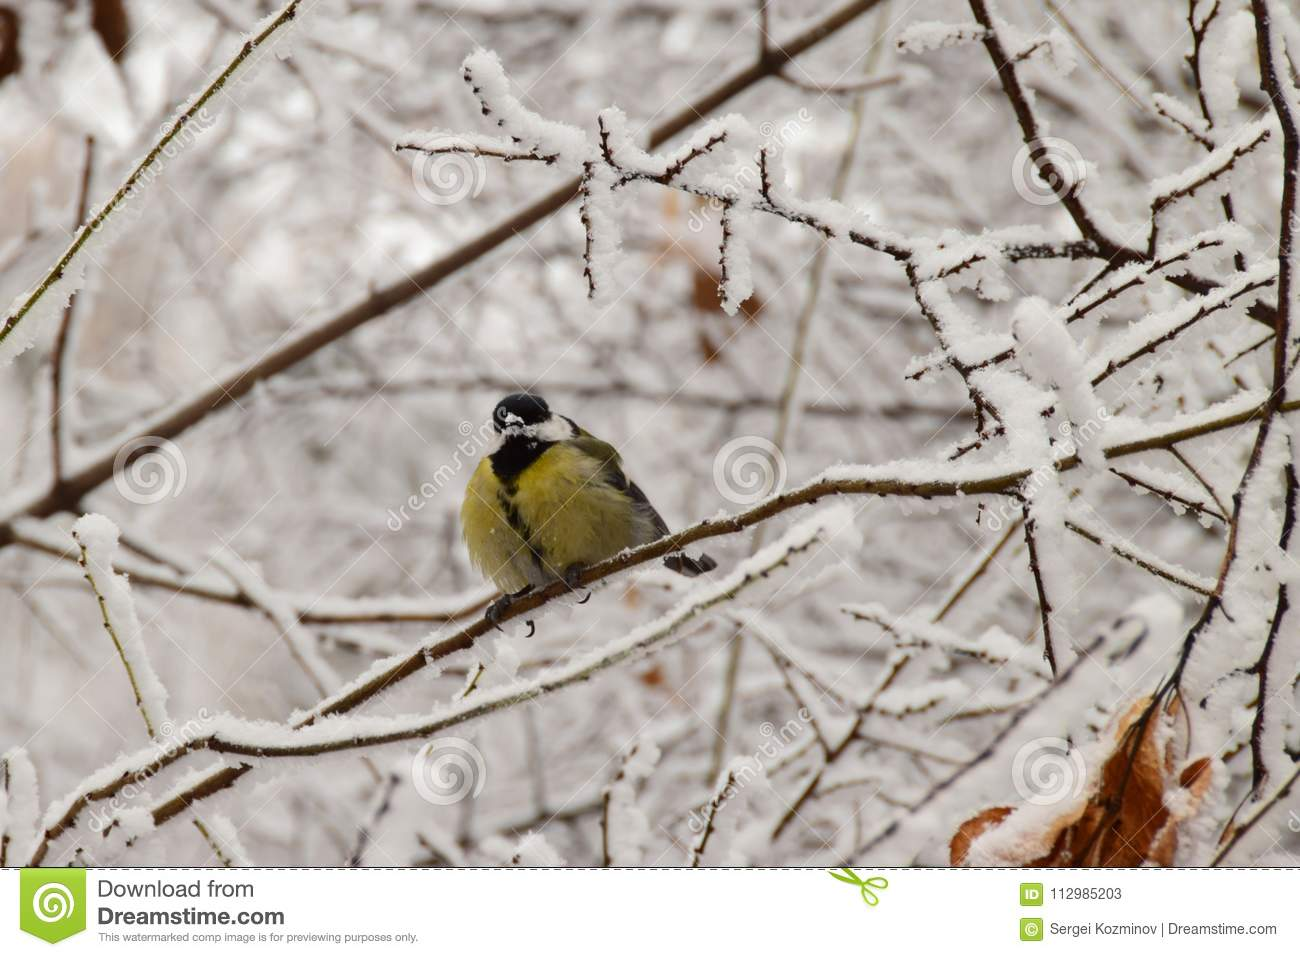 Close-up of a frozen yellow caucasian titmouse sitting in snowy